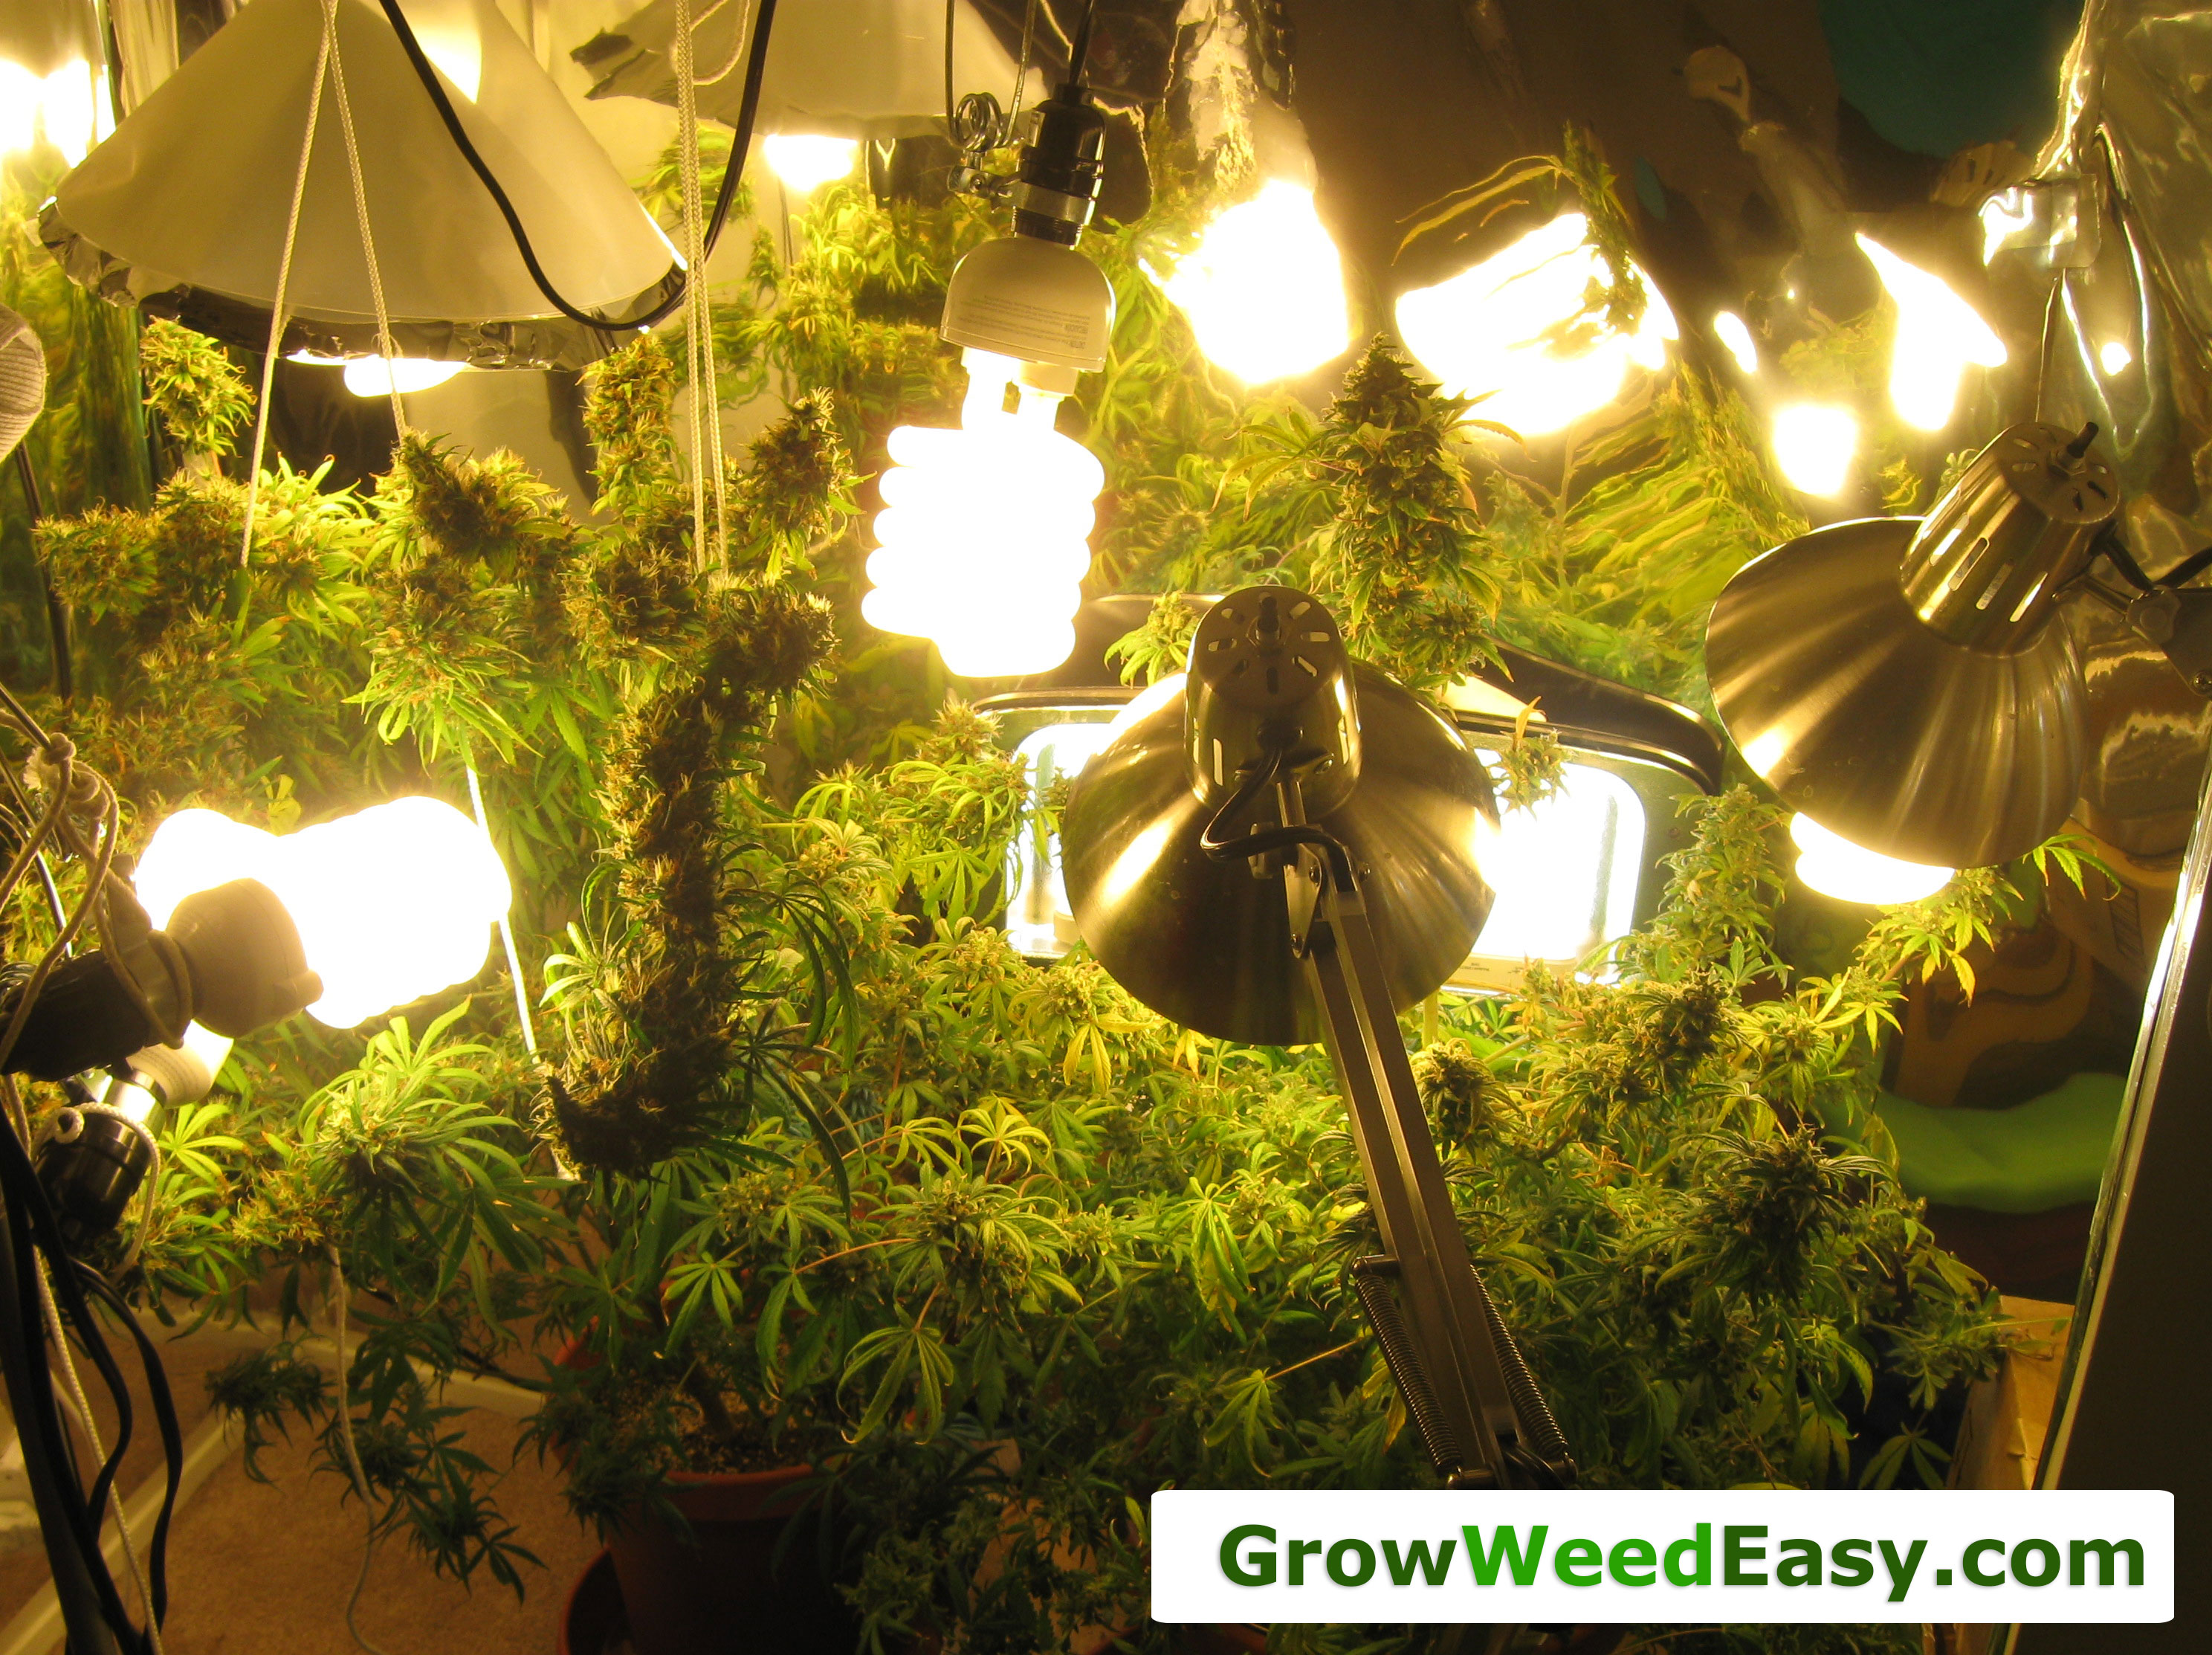 Grow Cannabis Guide w/ CFL Grow Lights  How to Grow Marijuana  Grow